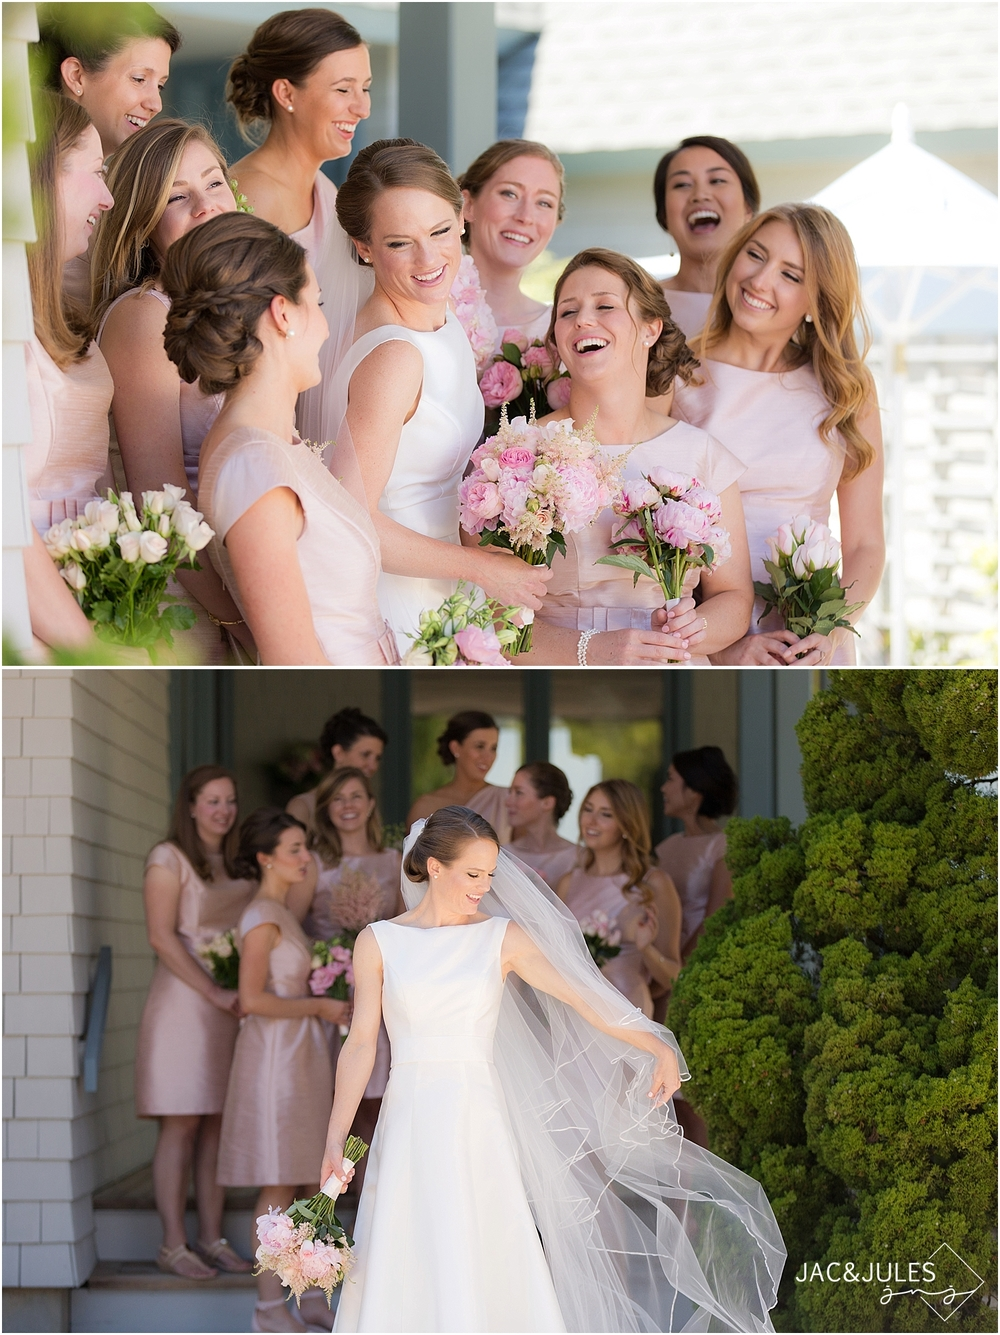 jacnjules photograph a nj beach wedding at mantoloking yacht club